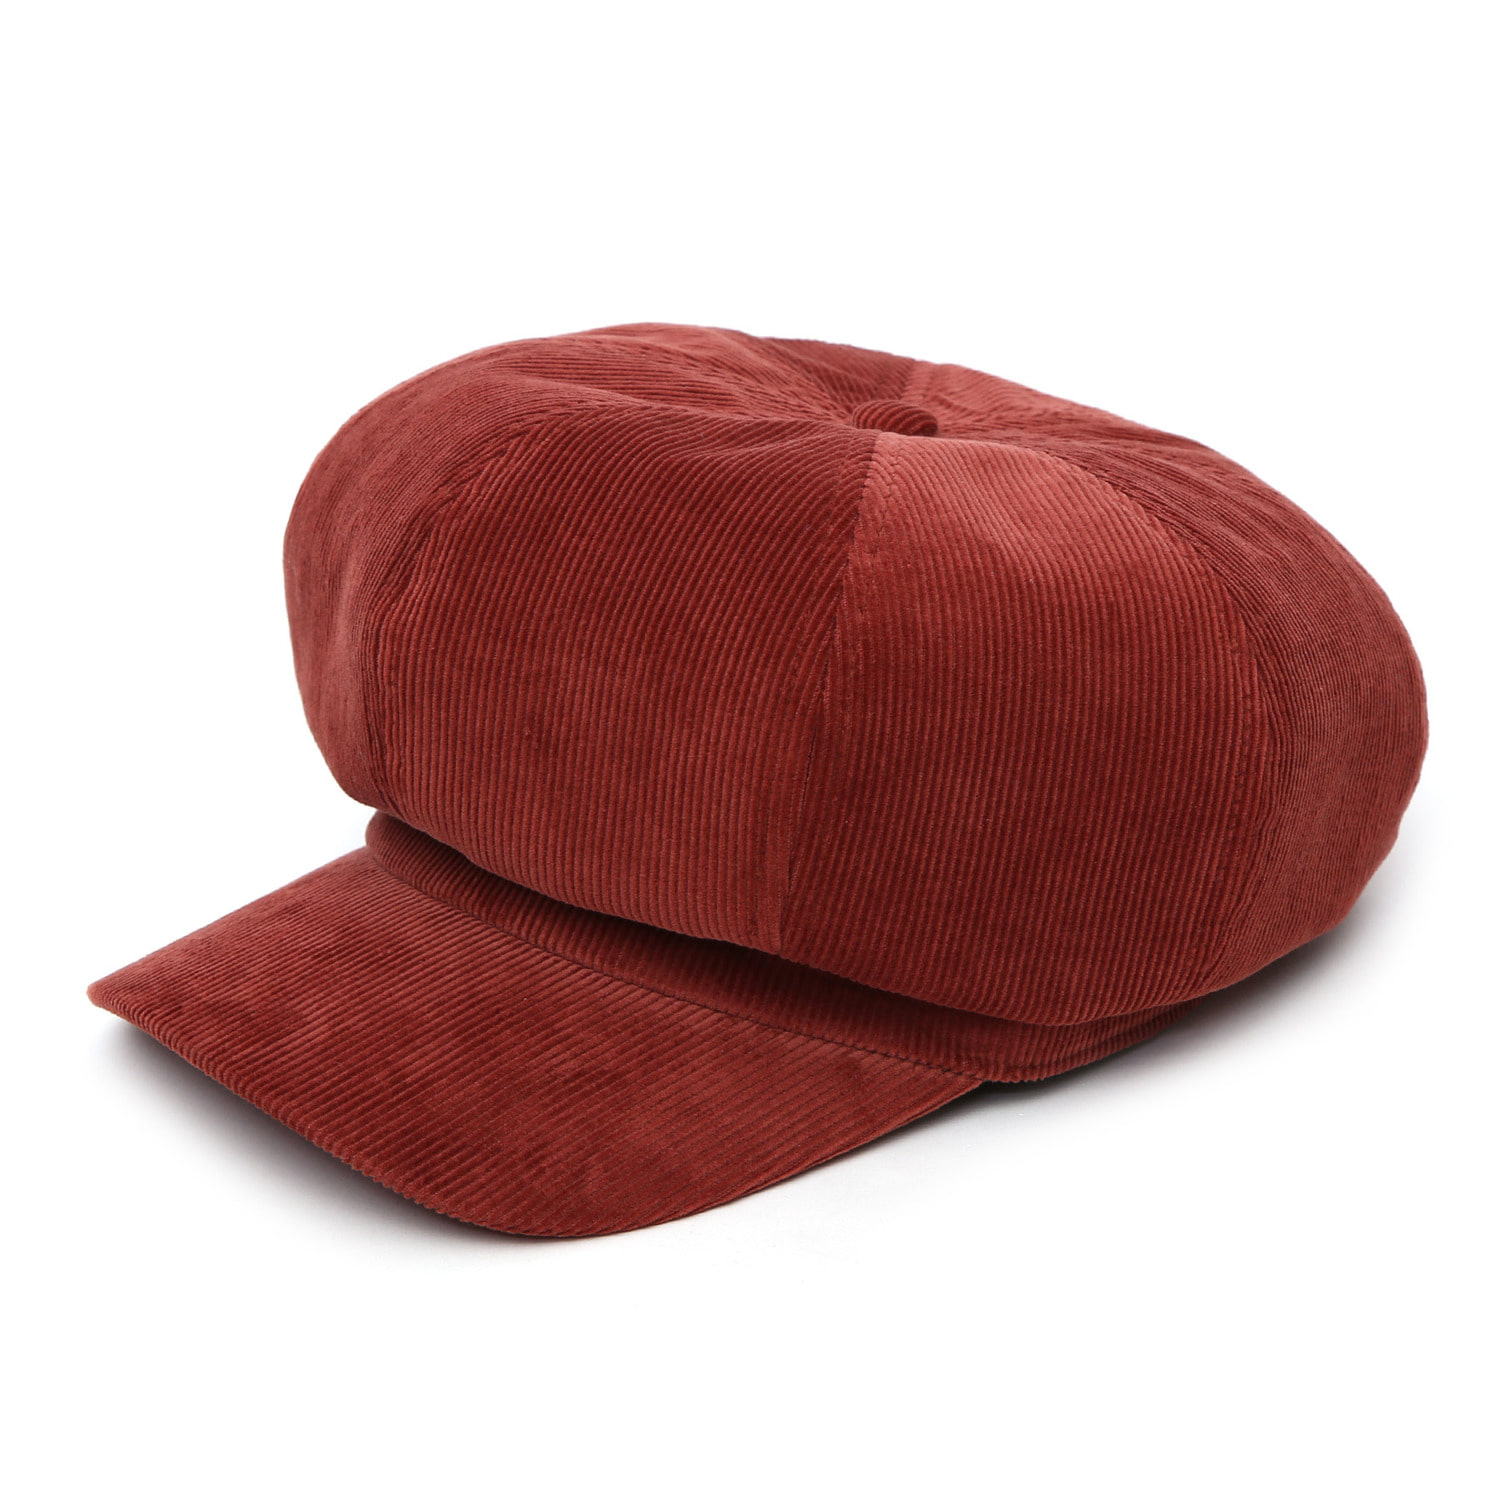 CASTRO BERET / CORDUROY / NIGHT RED